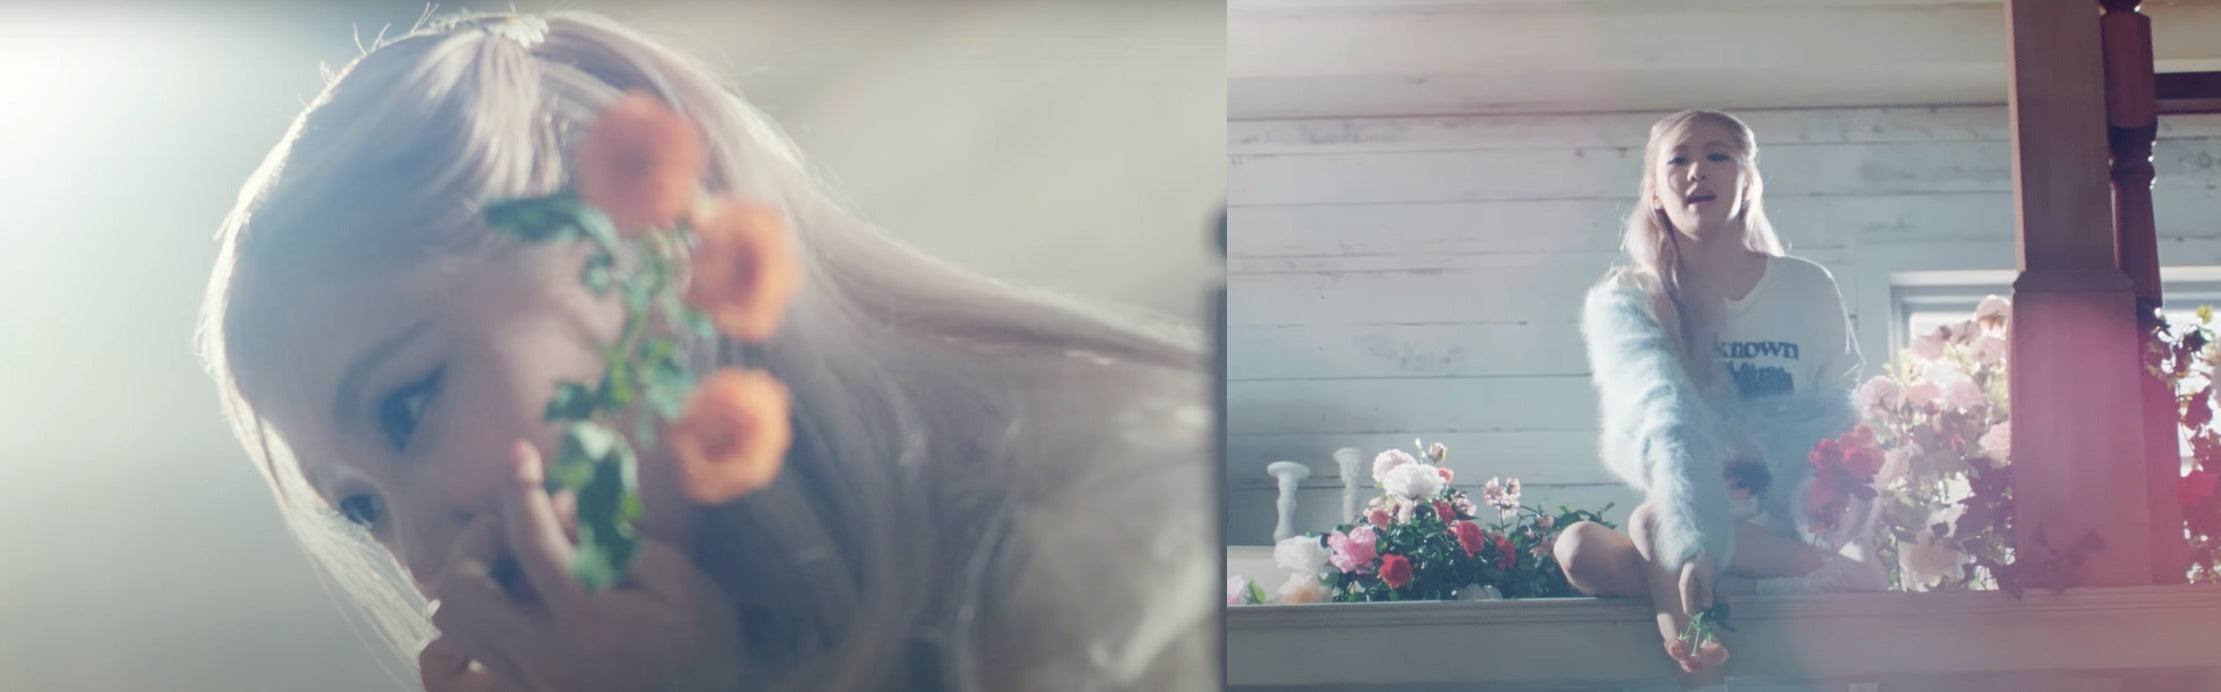 """ic: Rosé in a fuzzy blue sweater. Featured in Rosé's music video, """"On The Ground."""""""